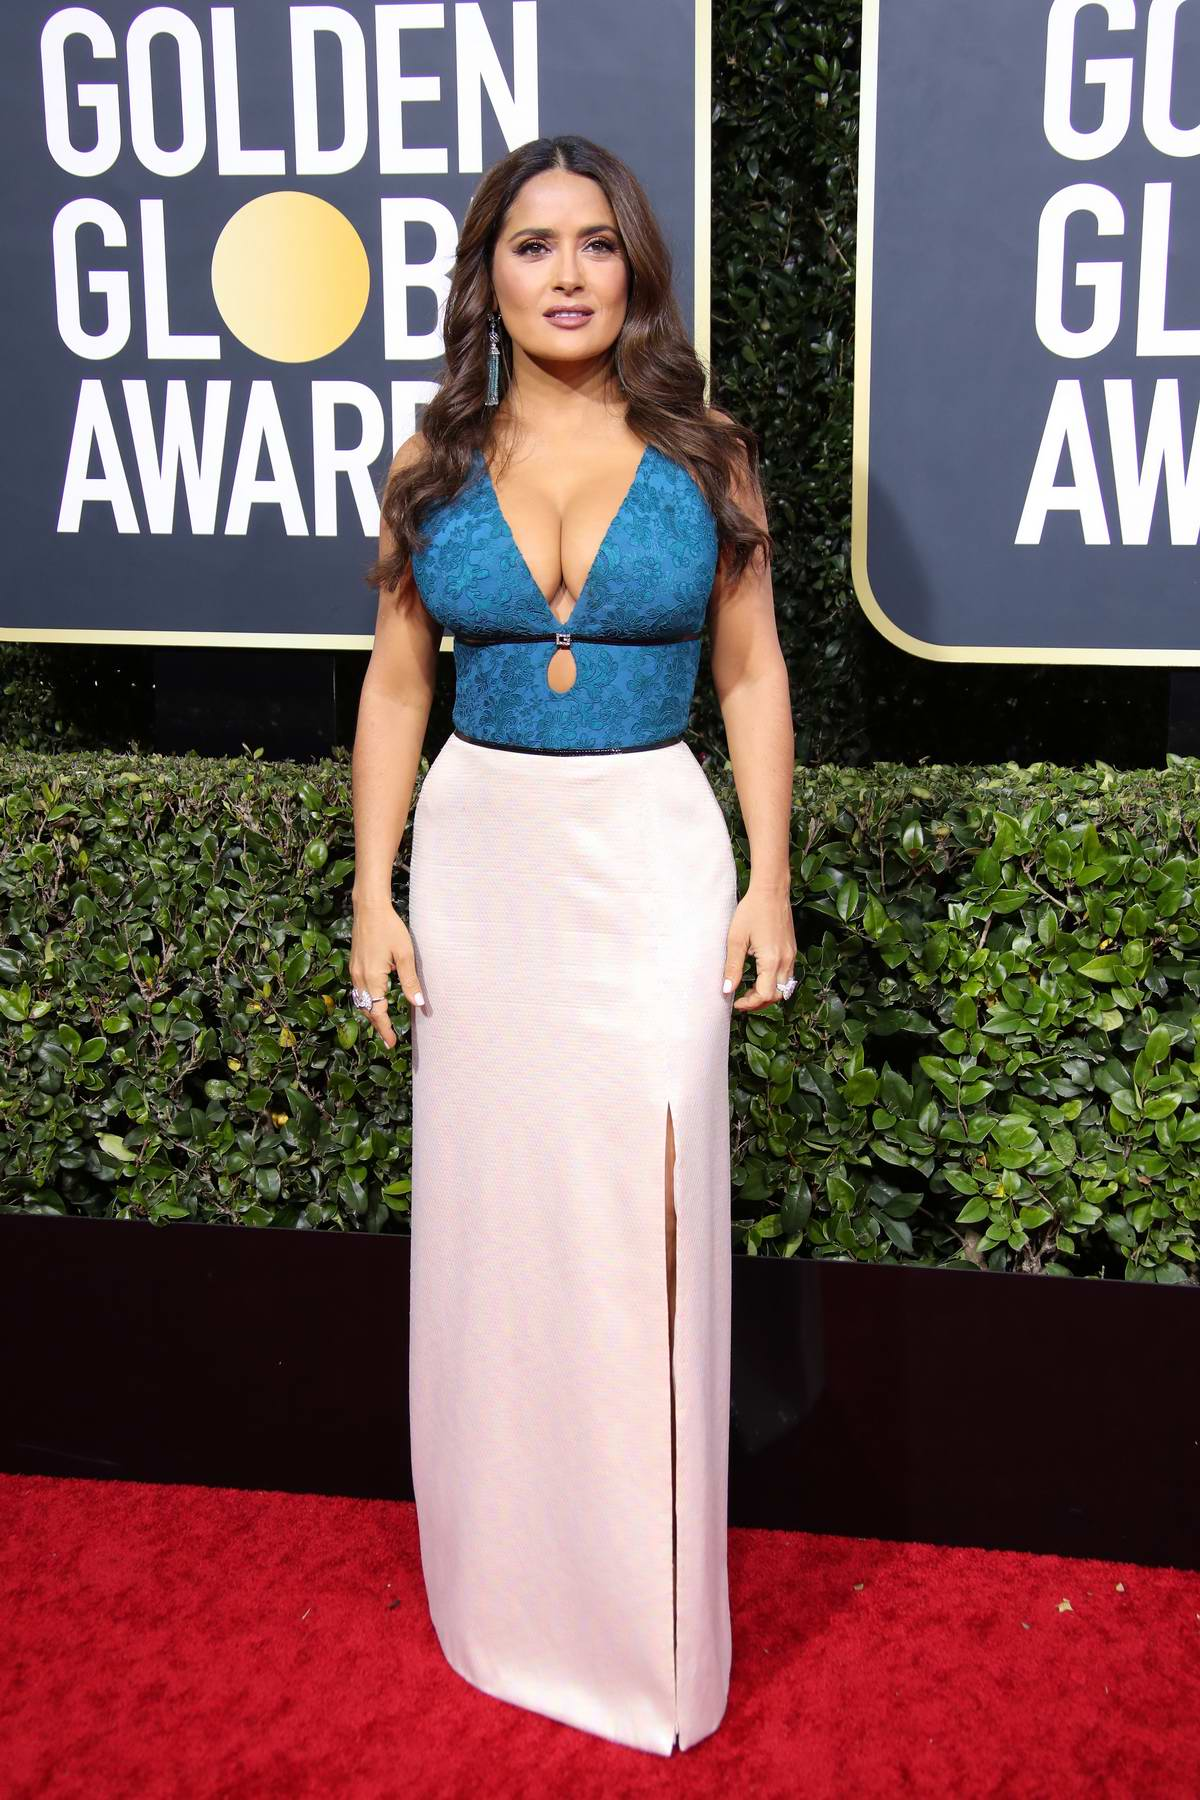 Salma Hayek attends the 77th Annual Golden Globe Awards at The Beverly Hilton Hotel in Beverly Hills, California